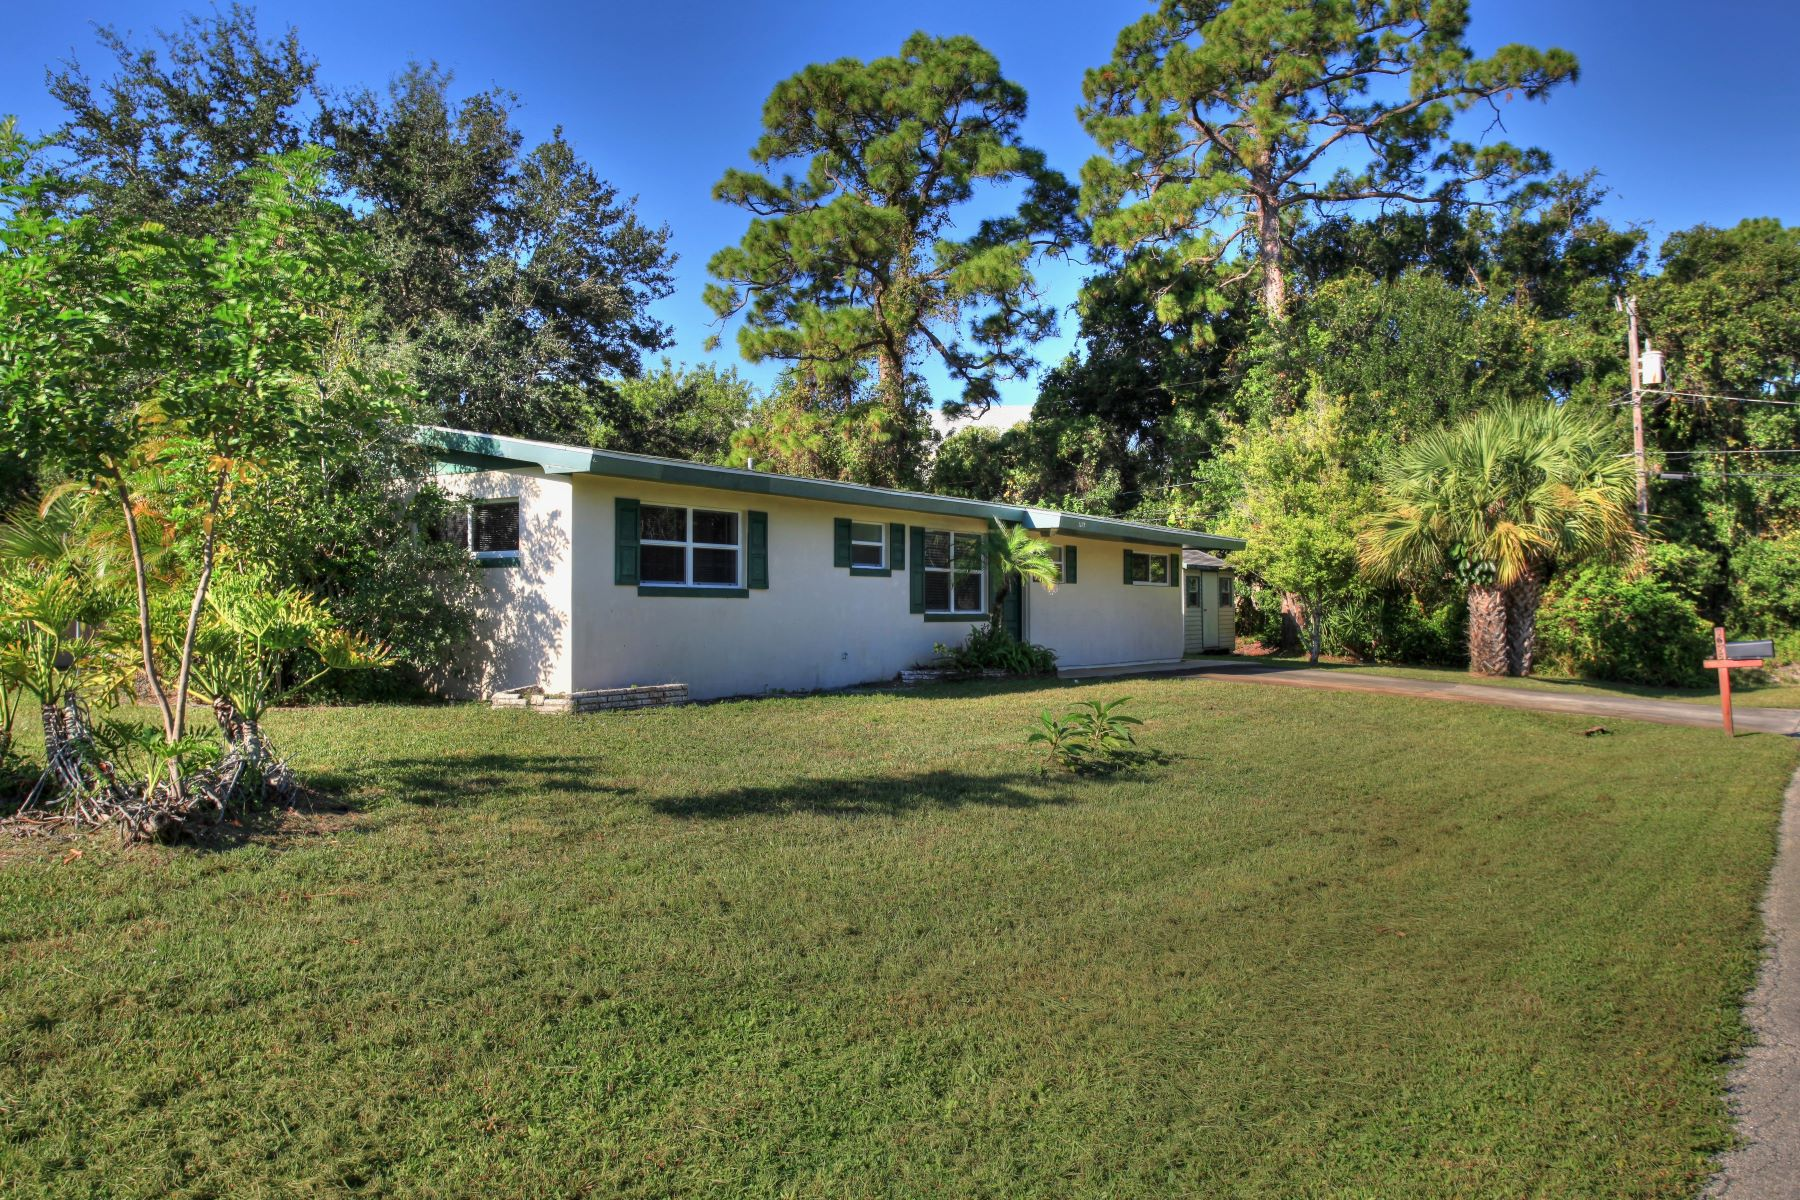 Single Family Homes for Sale at Cute Florida Home 1675 41st Avenue Vero Beach, Florida 32960 United States